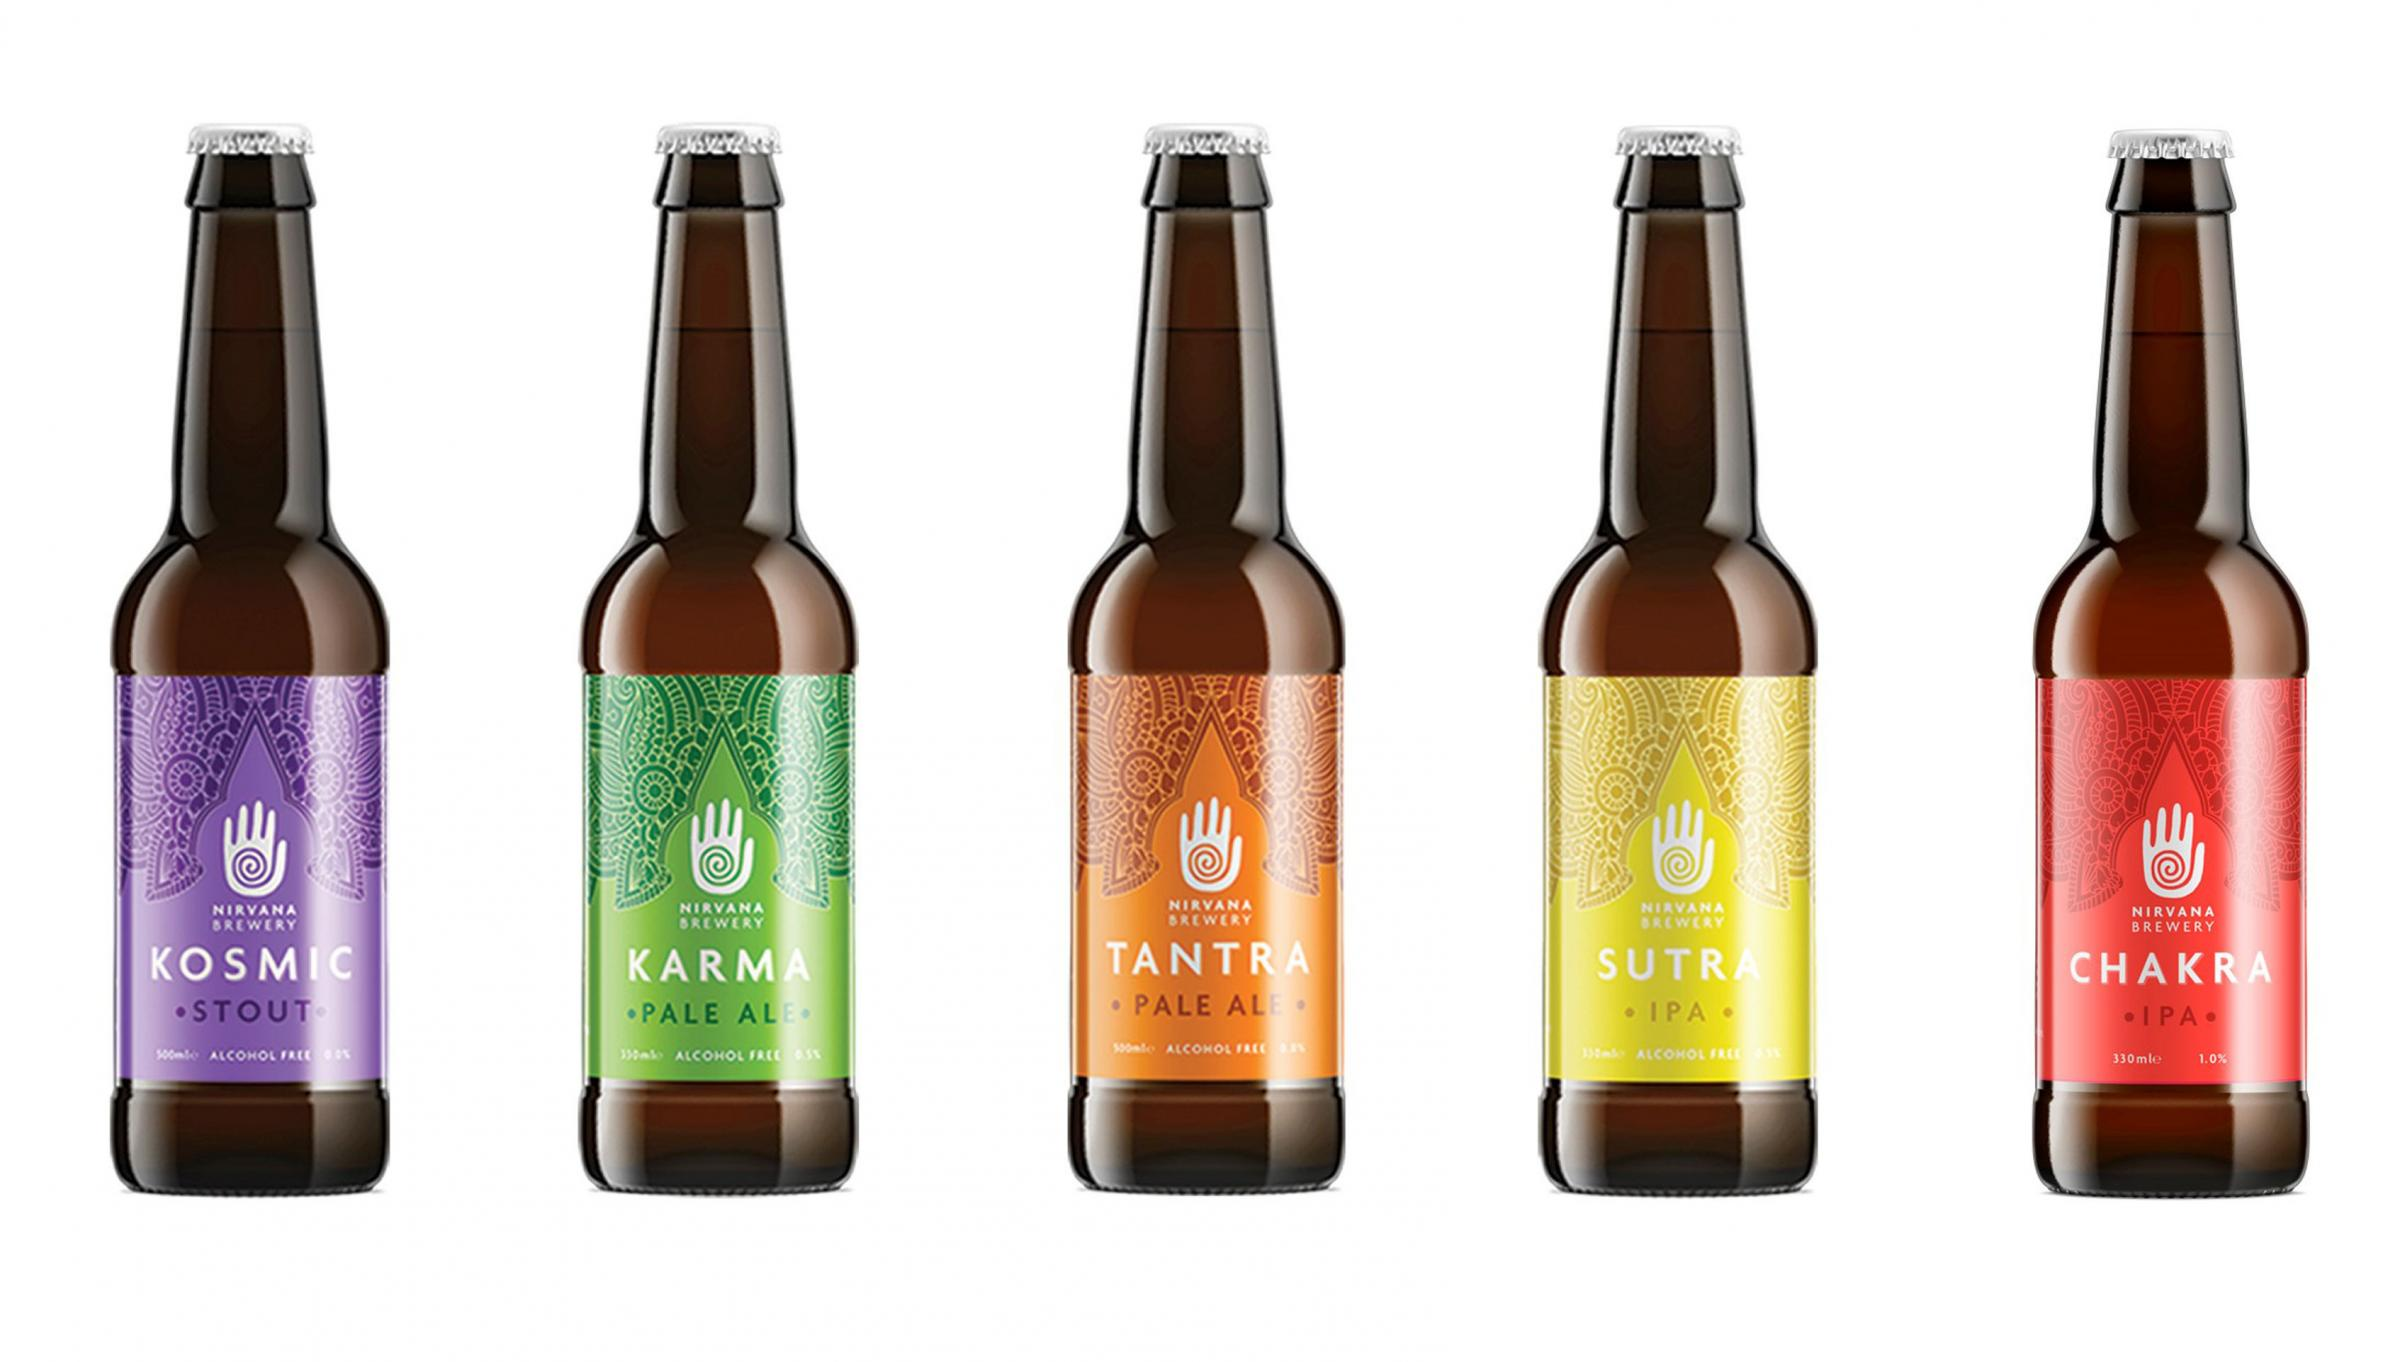 Nirvana Brewery Selection of low and alcohol-free, craft beers